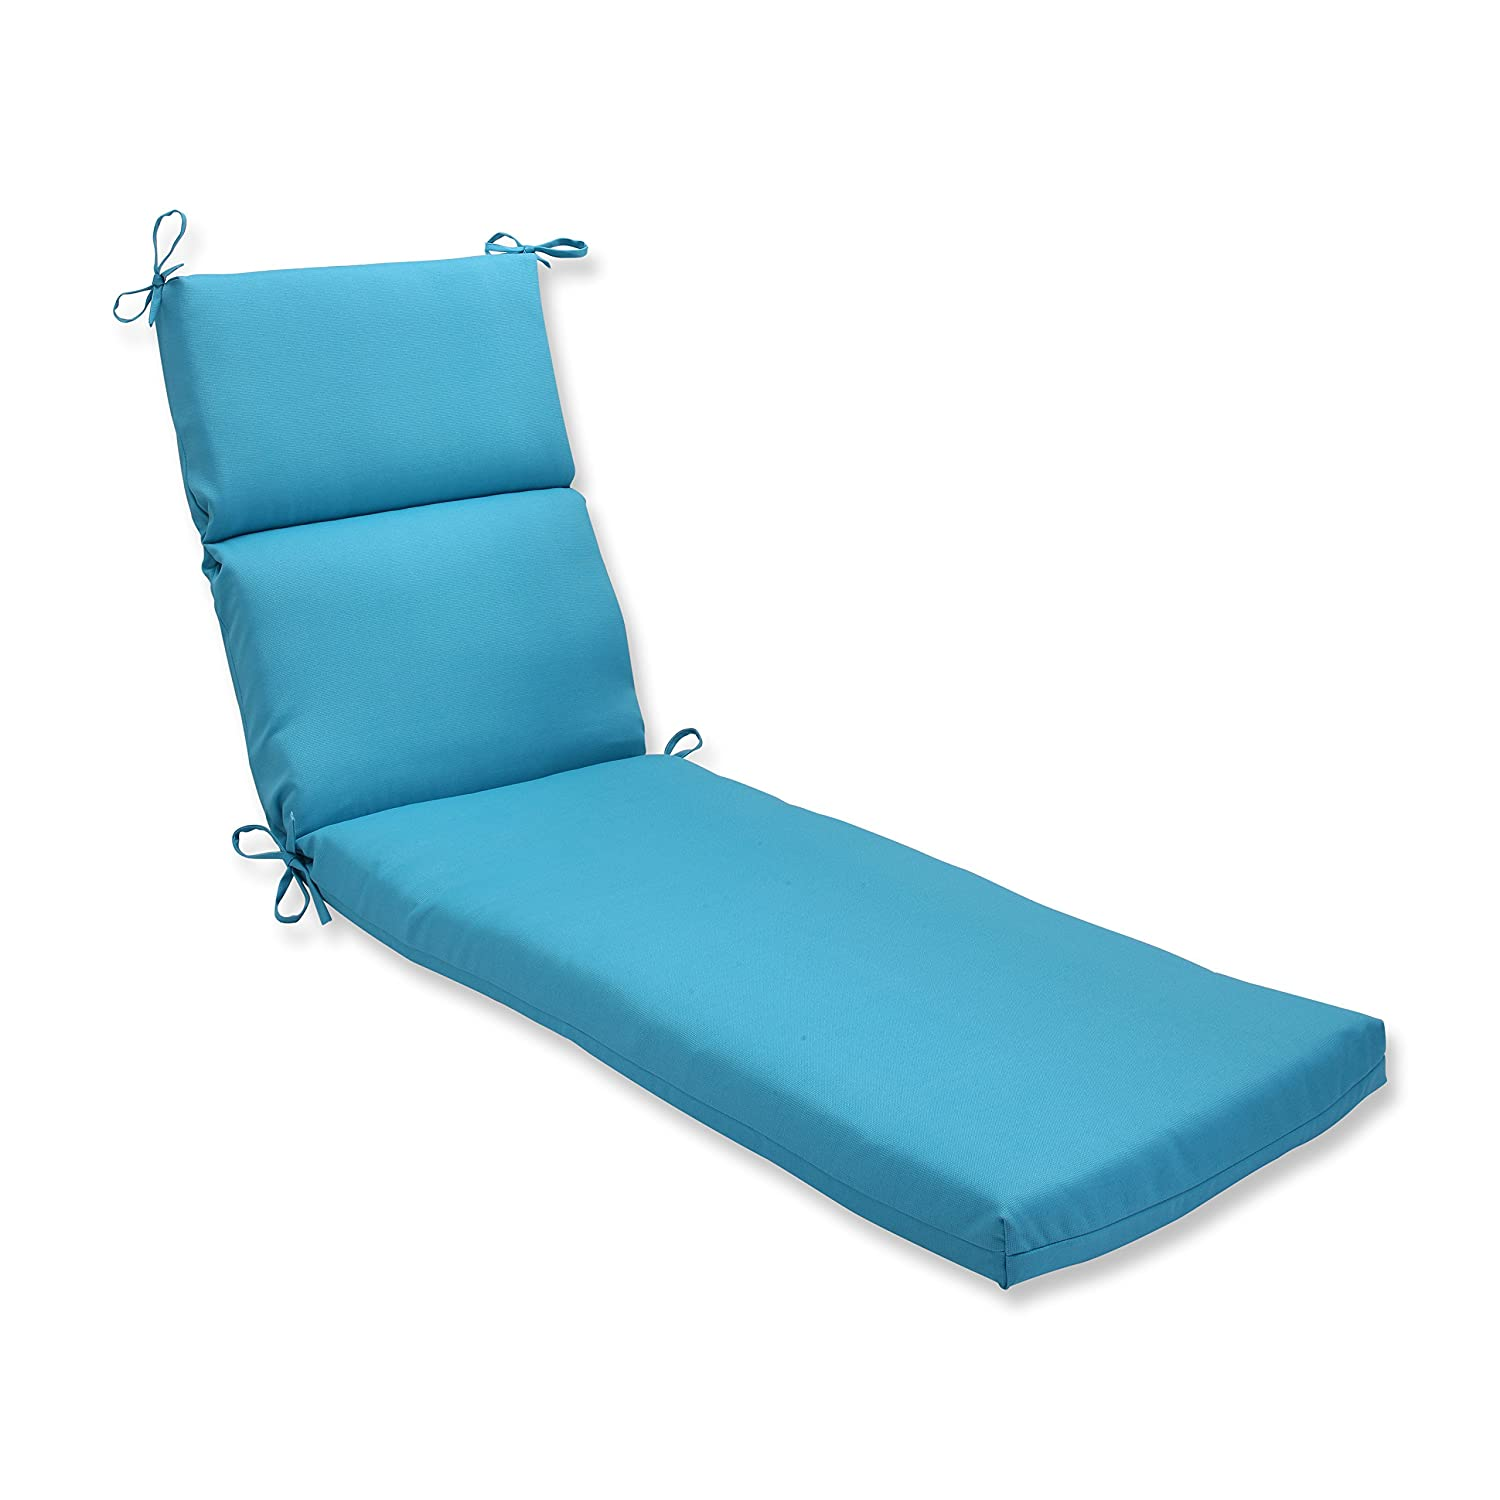 Attirant Amazon.com: Pillow Perfect Outdoor Veranda Turquoise Chaise Lounge Cushion:  Home U0026 Kitchen